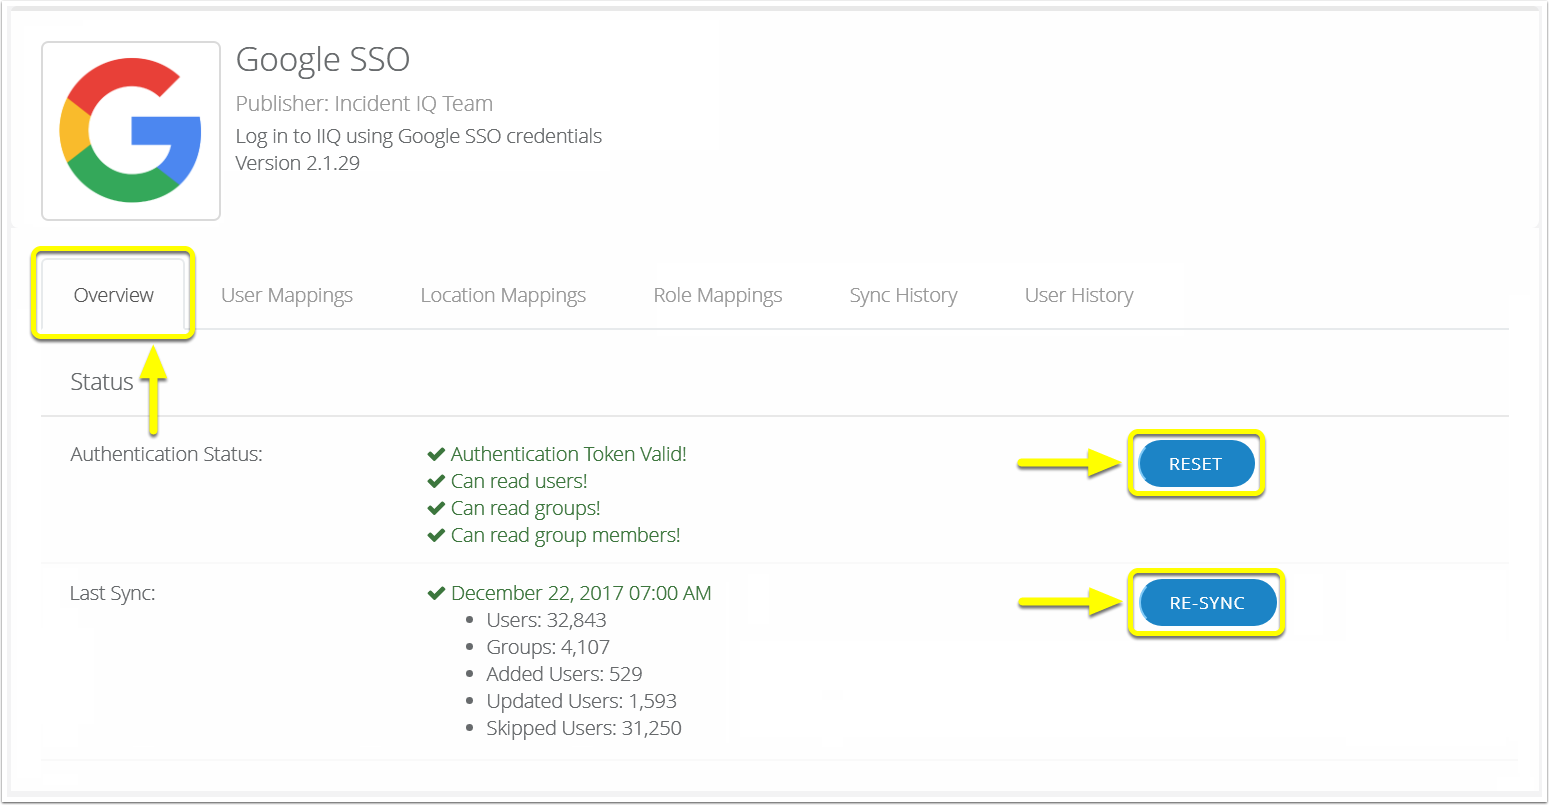 Google_SSO_Overview.png